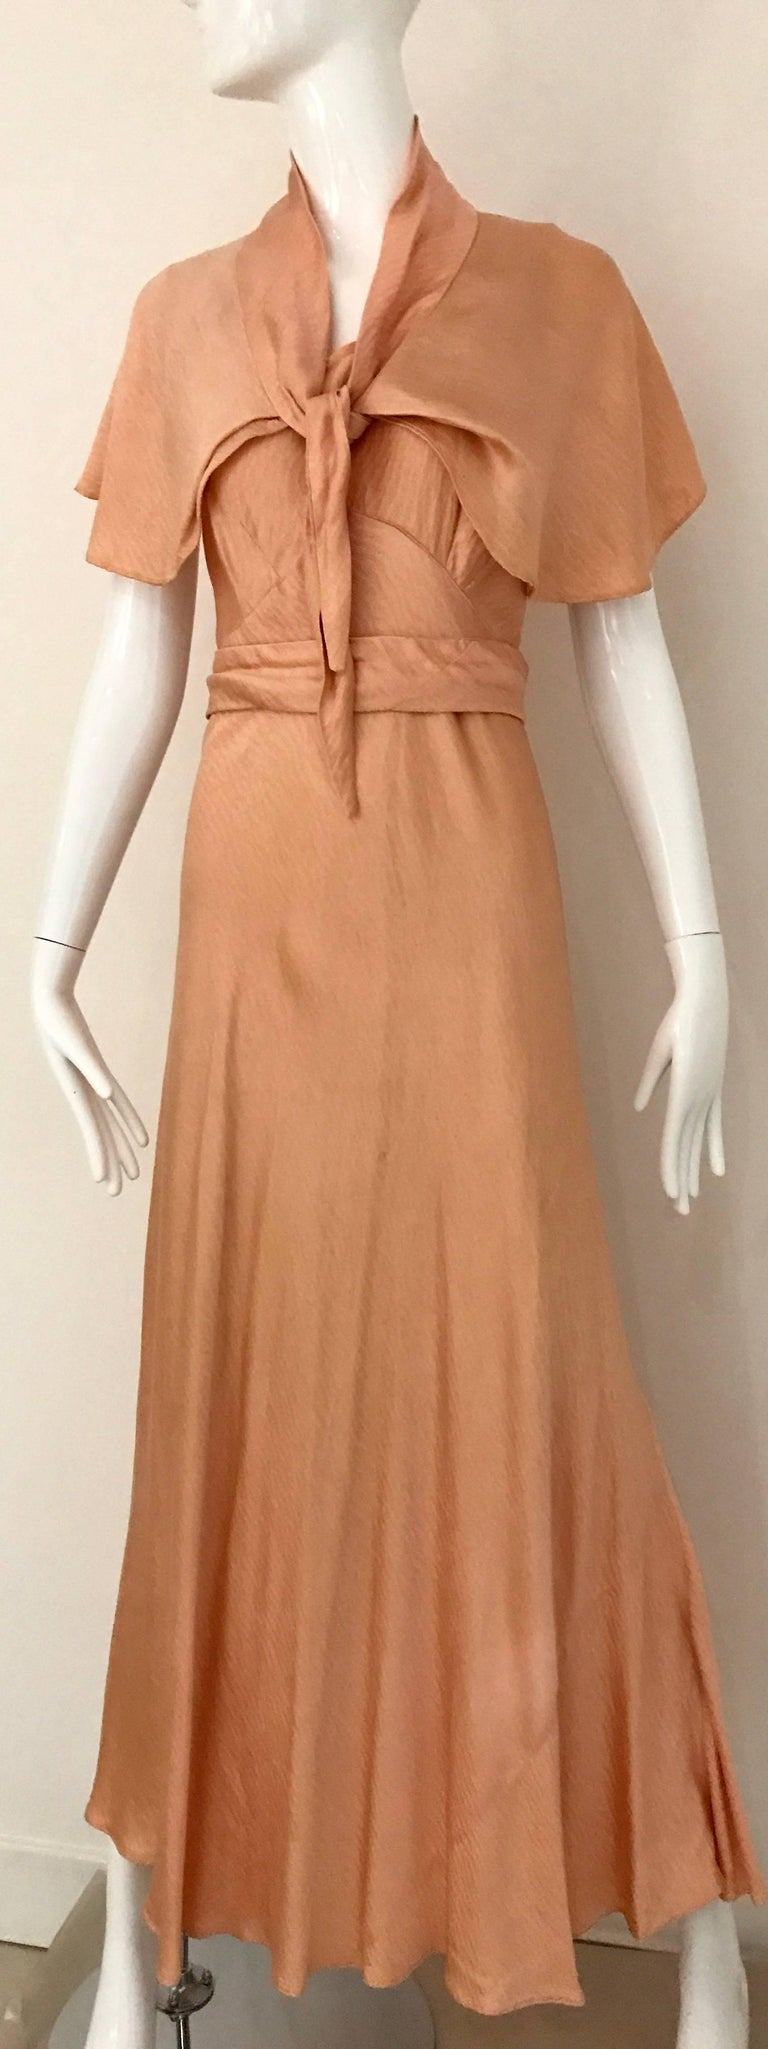 1930s Peach Silk Bias Cut Dress with Shawl Capelet  For Sale 3